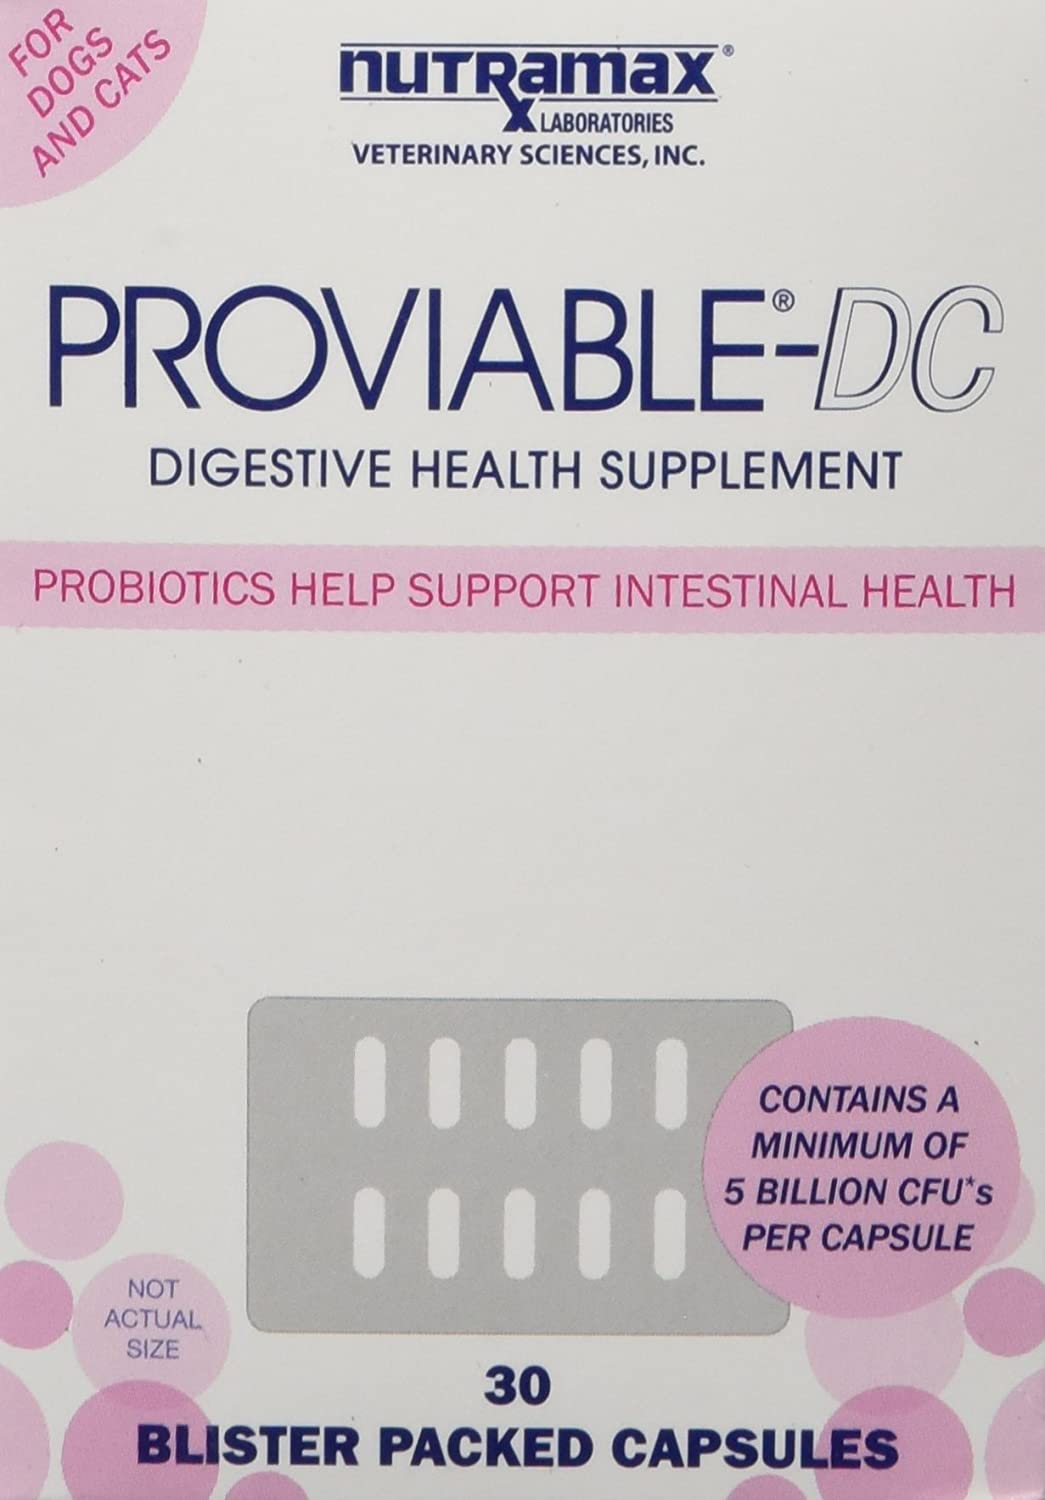 Nutramax Proviable DC Capsules for Cats and Dogs 30 Count